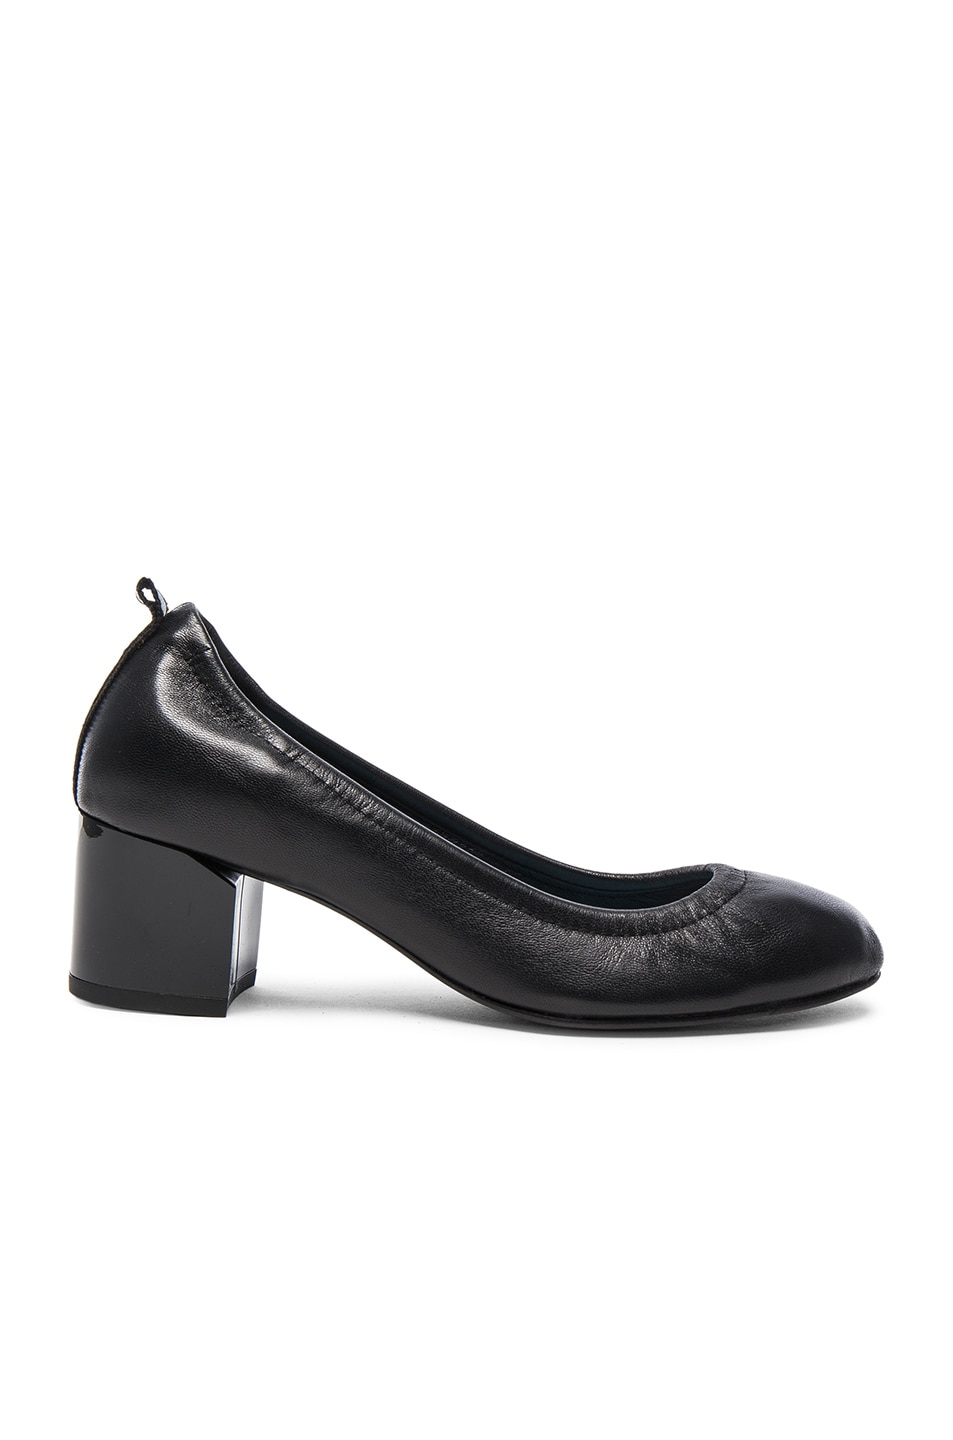 Image 1 of Lanvin Leather Ballerina Cube Heels in Black